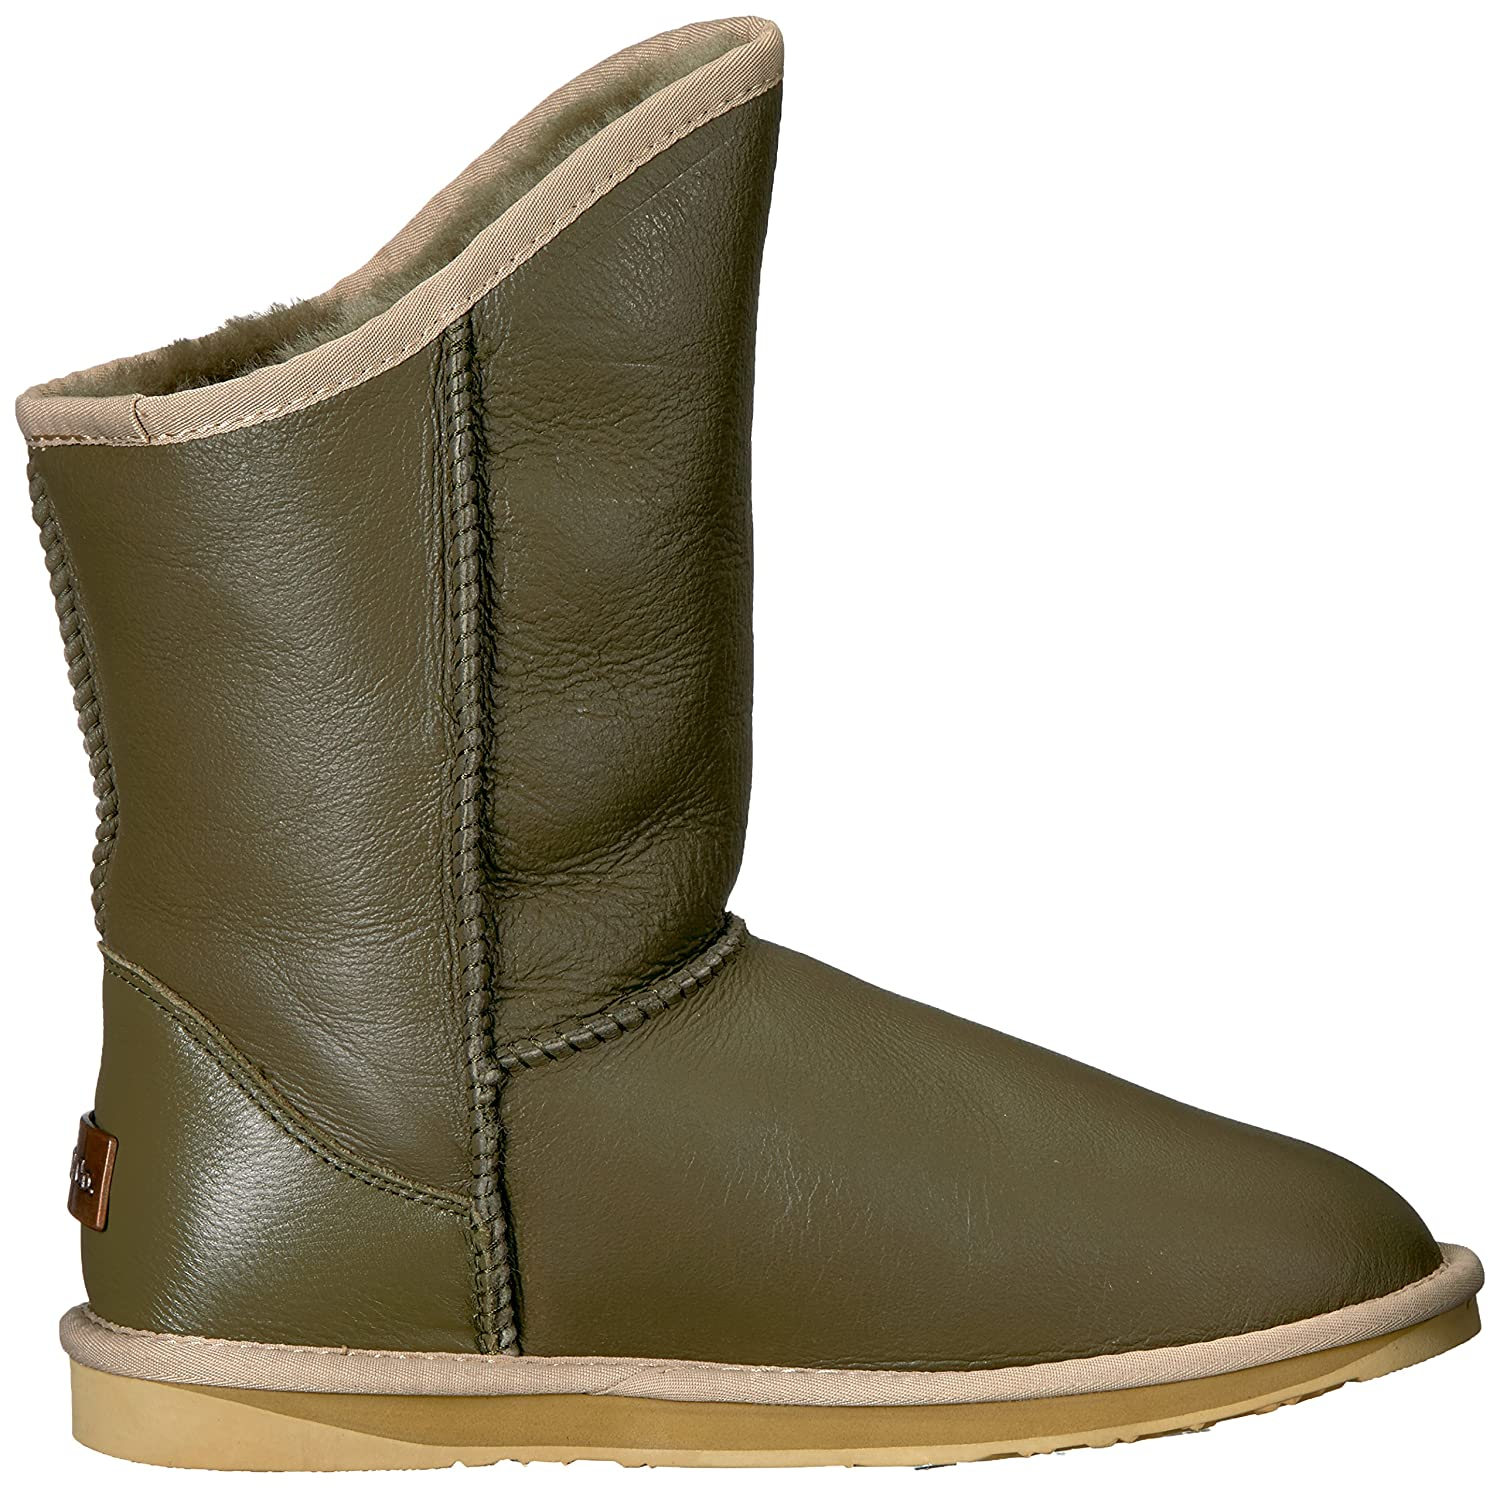 Luxe Boots Co............................. Womens Cosy Short Closed Toe Mid-Calf Fashion Boots Luxe B075FY2KWT 8 B(M) US|Army 43e08e